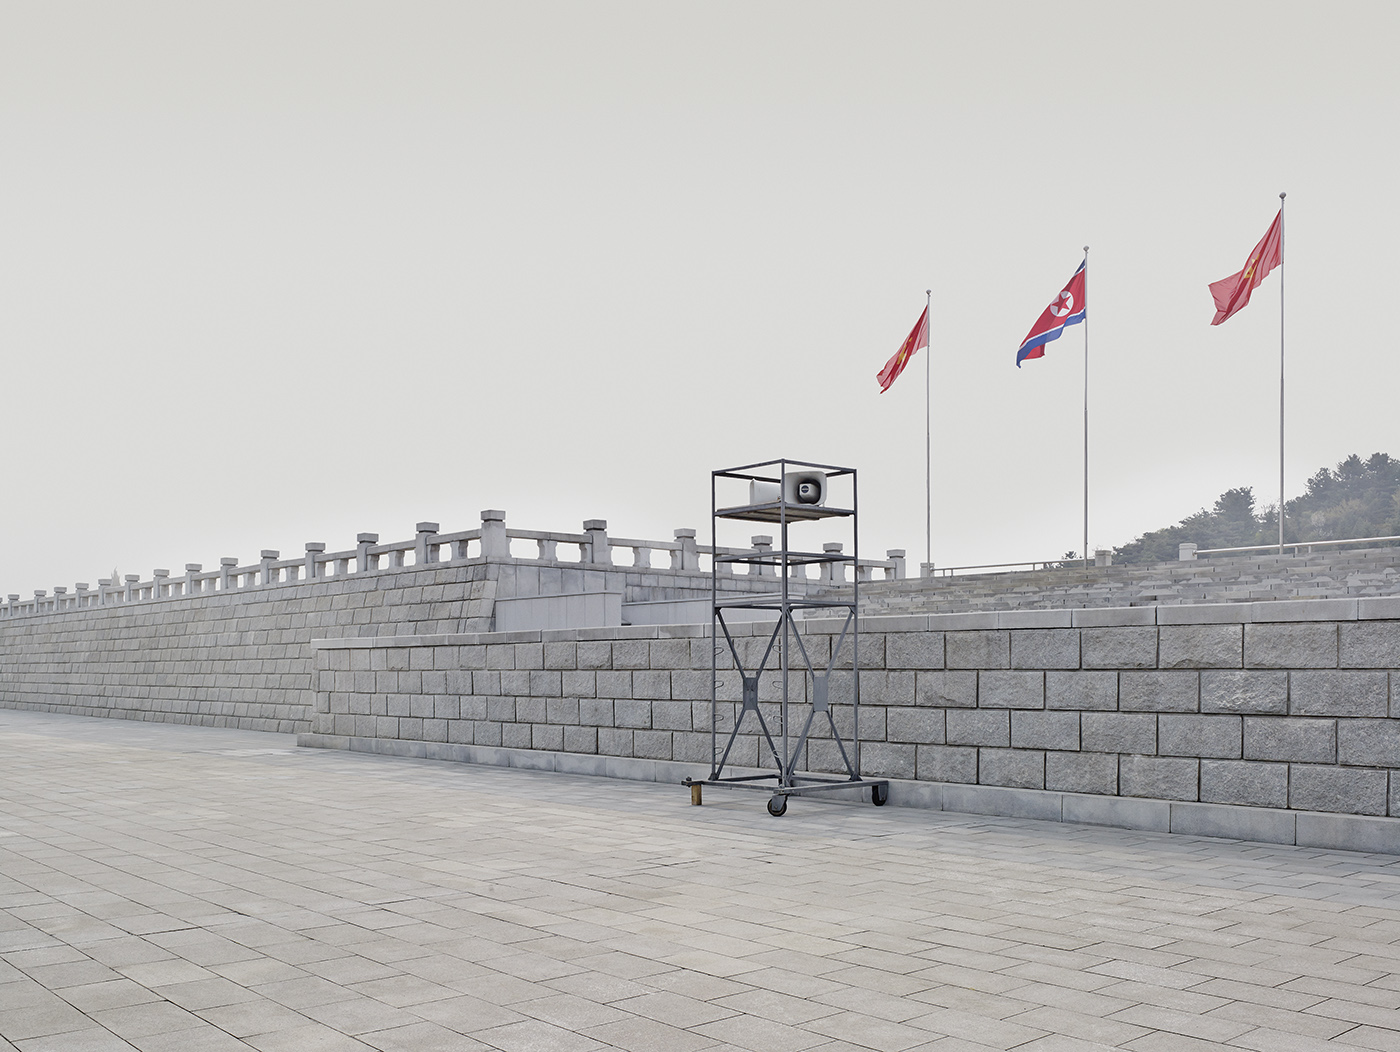 A loudspeaker sits outside the Kumsusan Palace of the Sun, Pyongyang. The building originally functioned as the seat of government under Kim Il Sung (1912-1994) and today acts as his mausoleum for him and his son, Kim Jong Il (1941-2011)